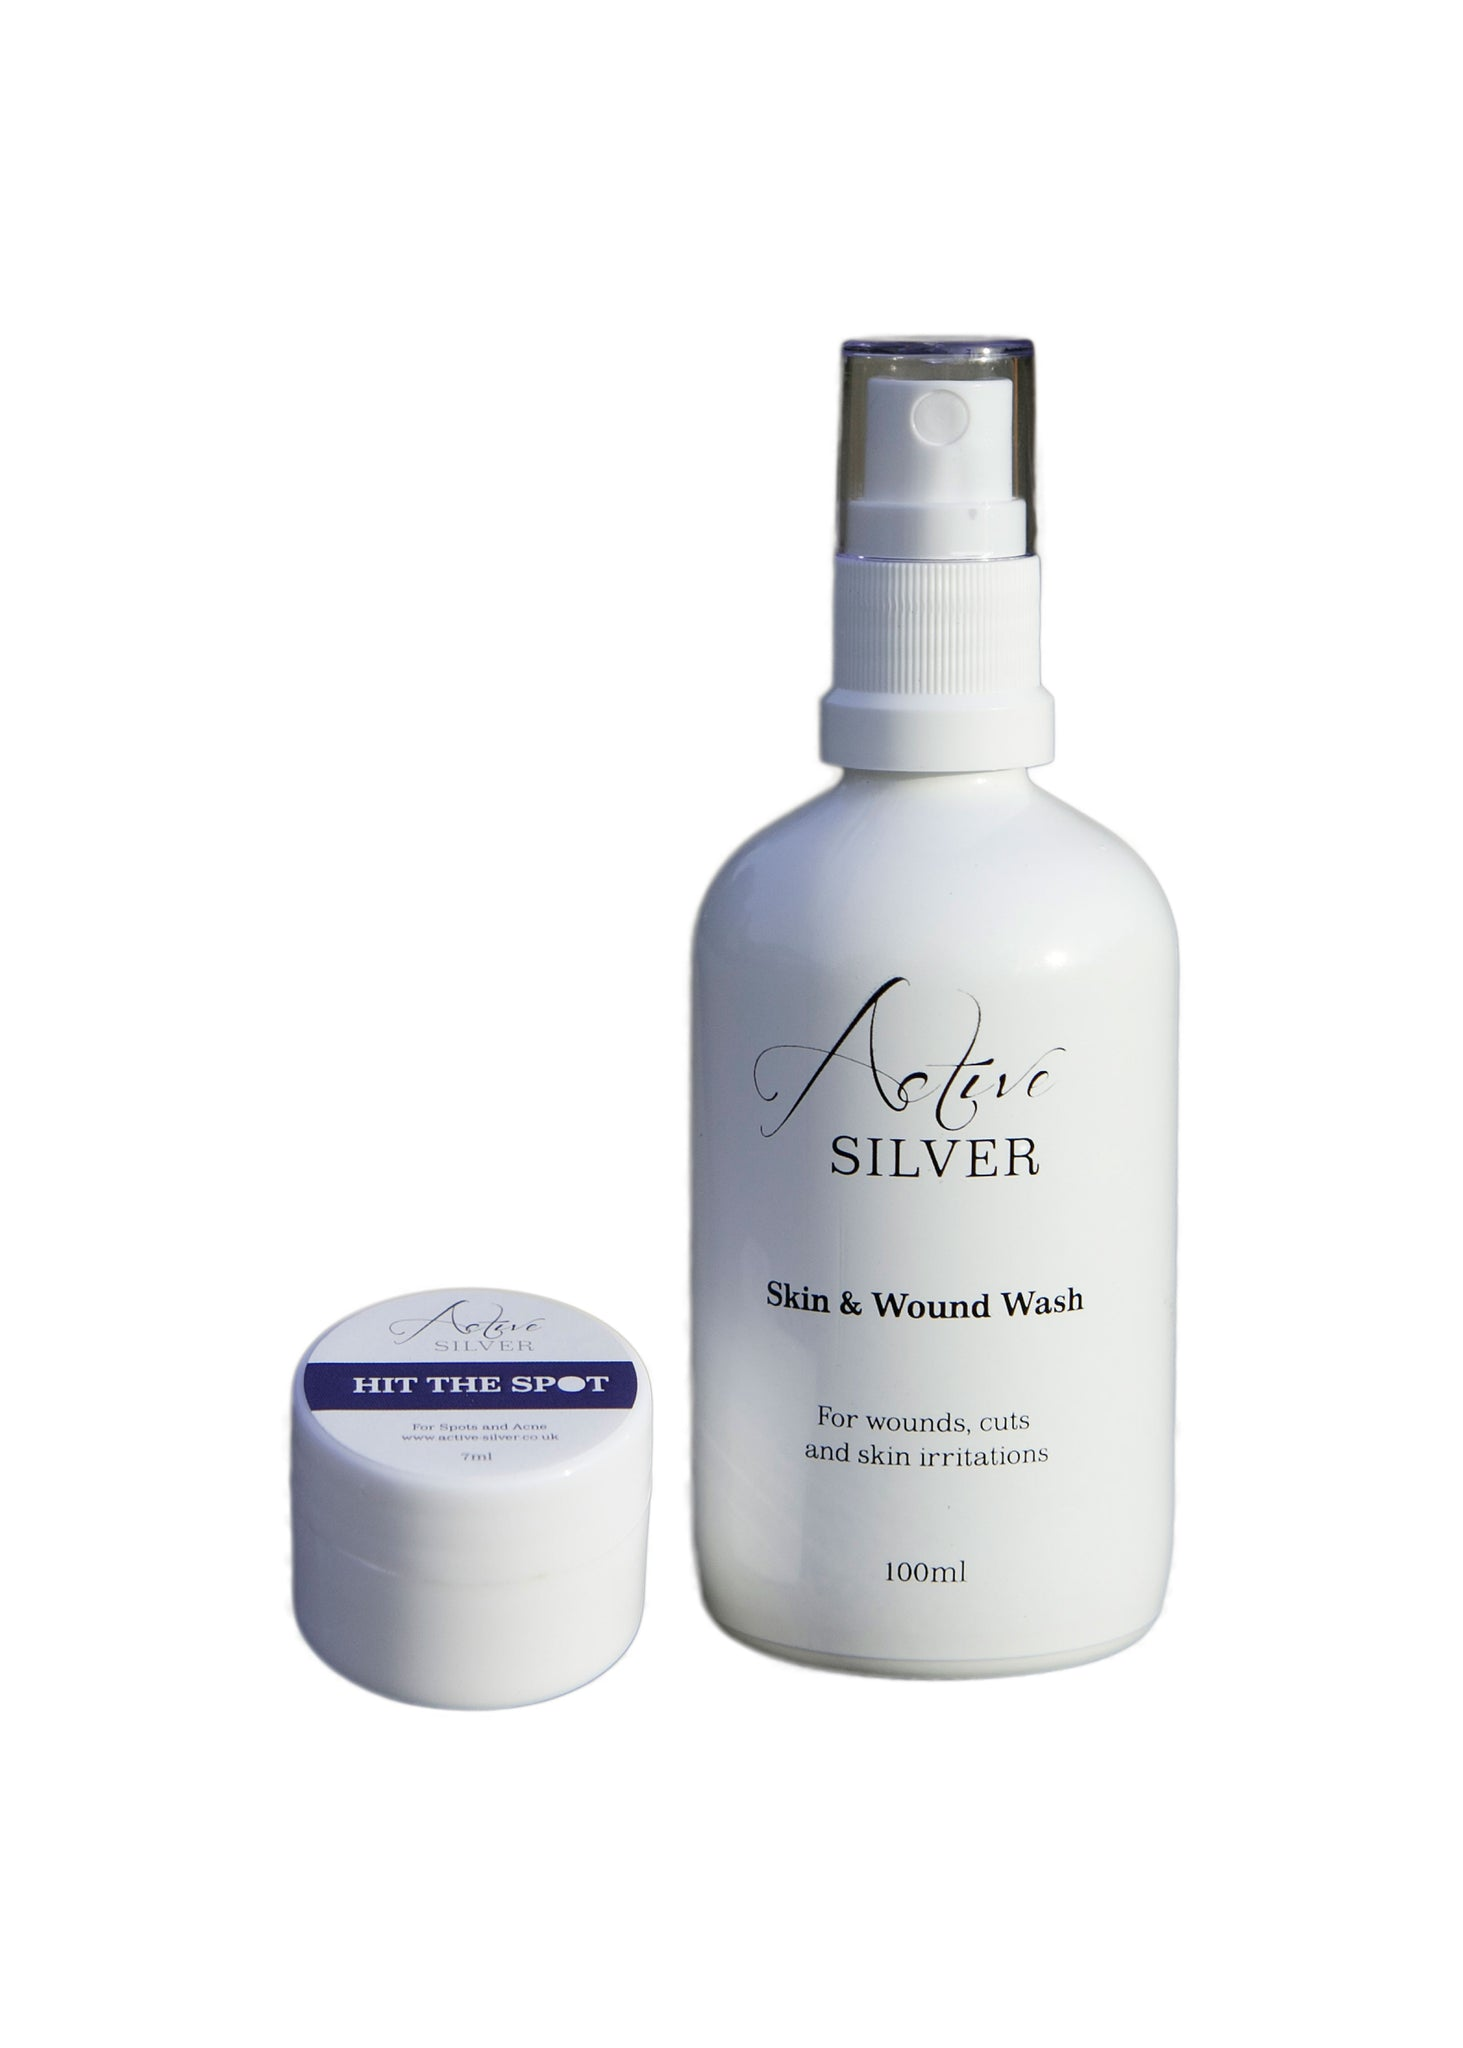 NEW Skin Care and Acne Set – with Colloidal Silver - Active Silver